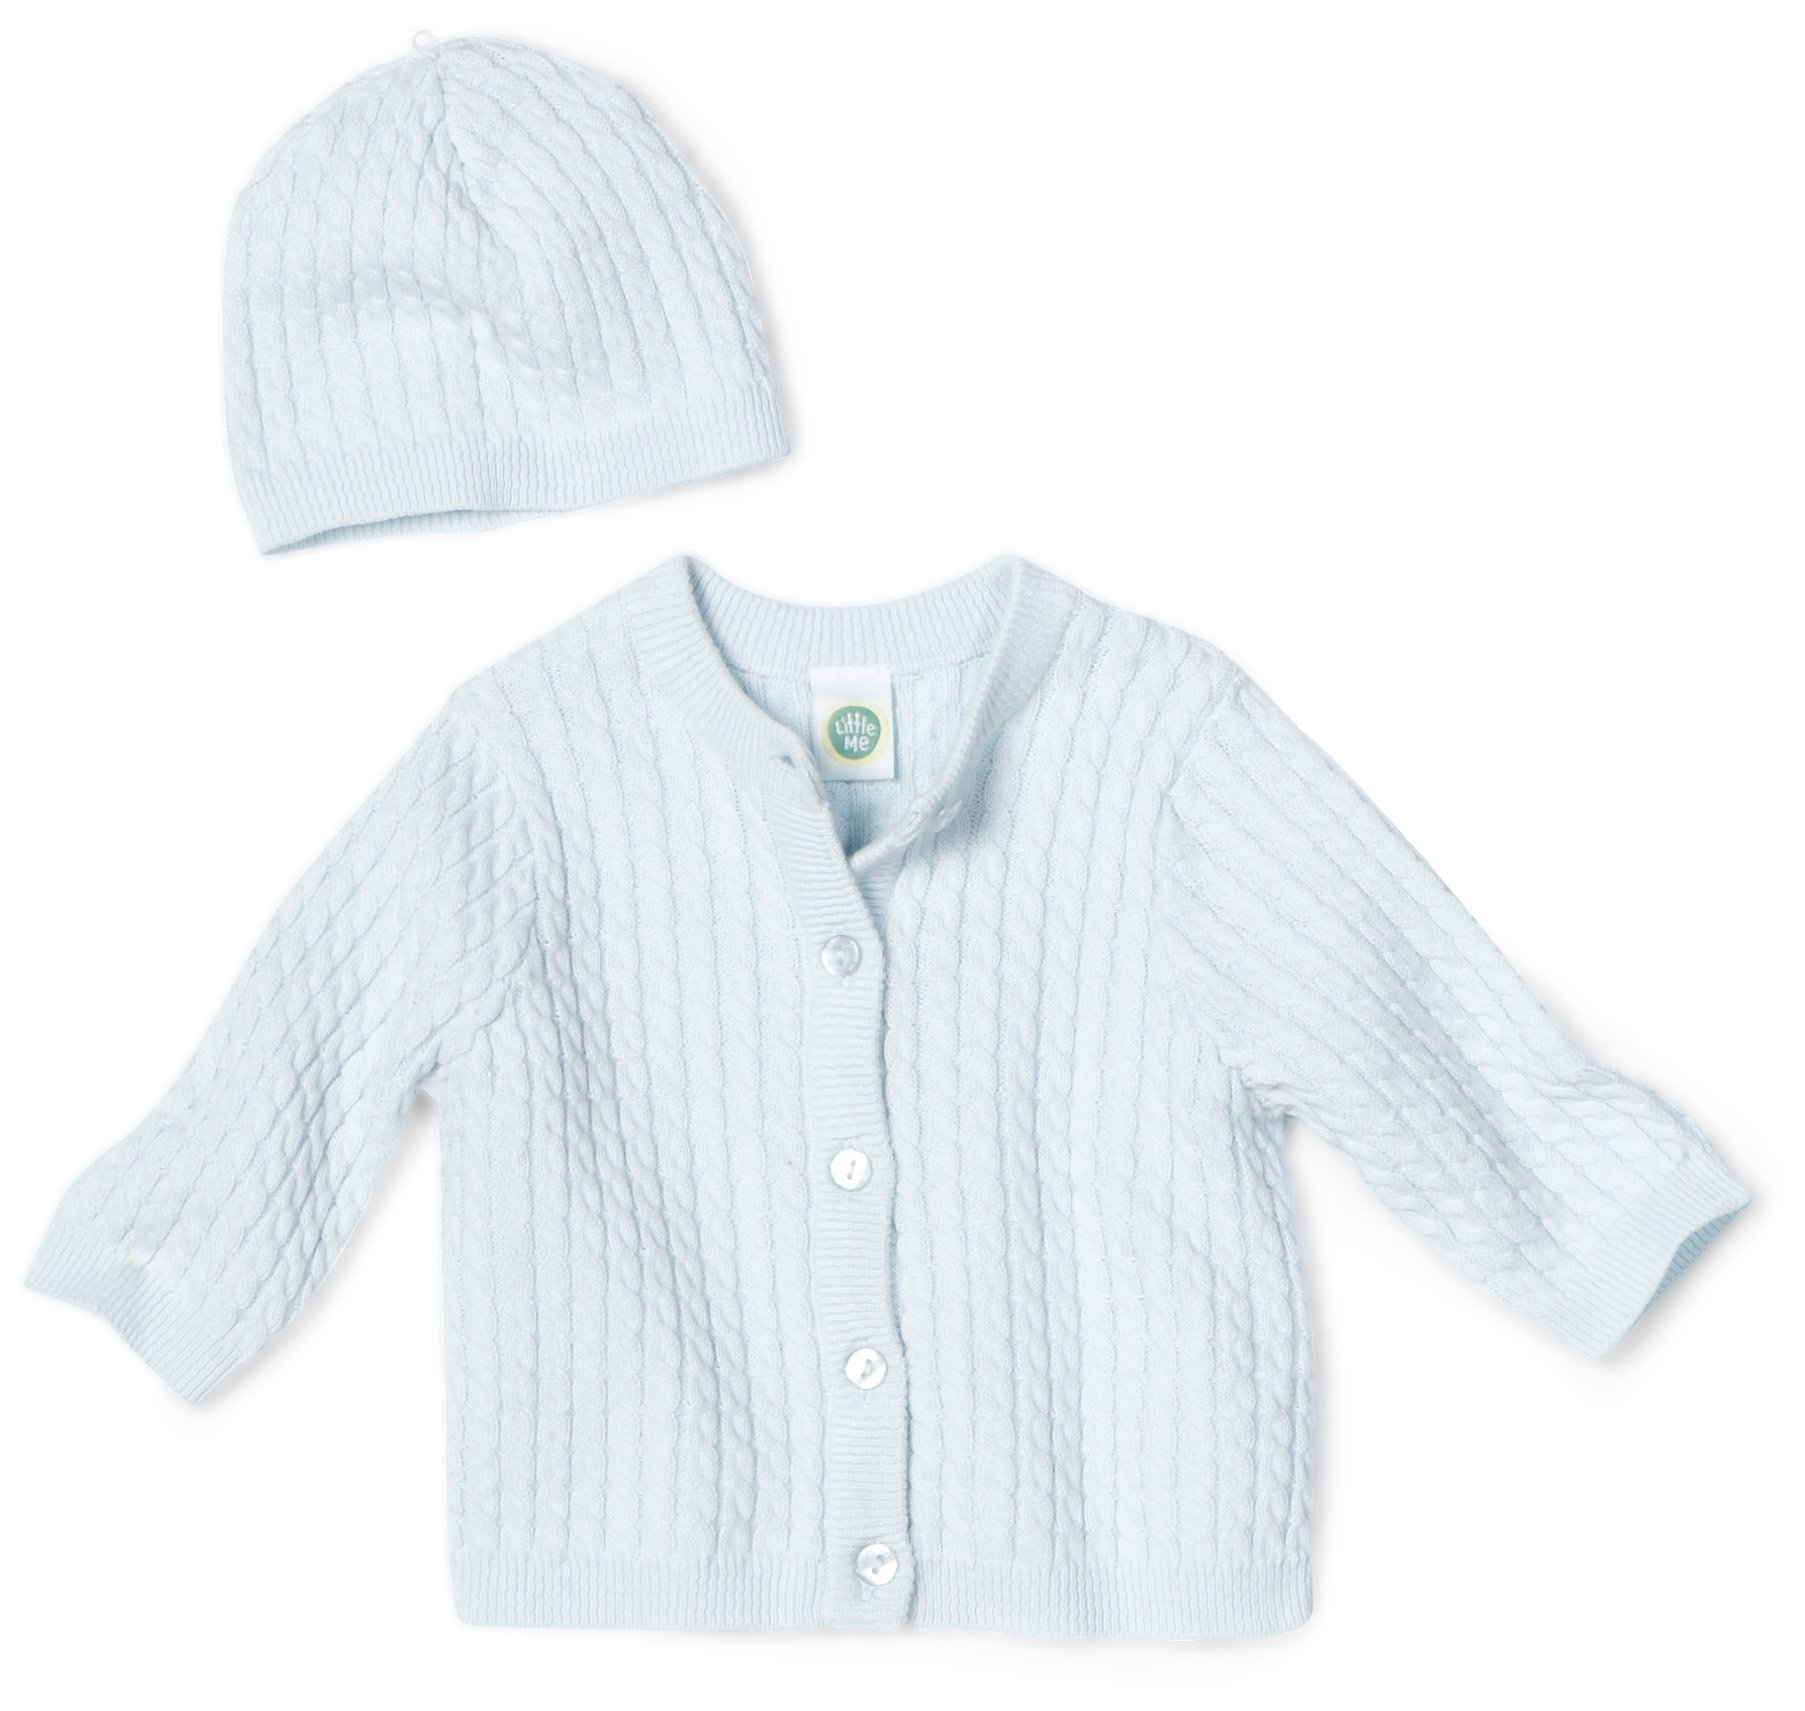 Little Me Baby Boy Newborn Huggable Cable Sweater, Light Blue, 3 Months by Little Me